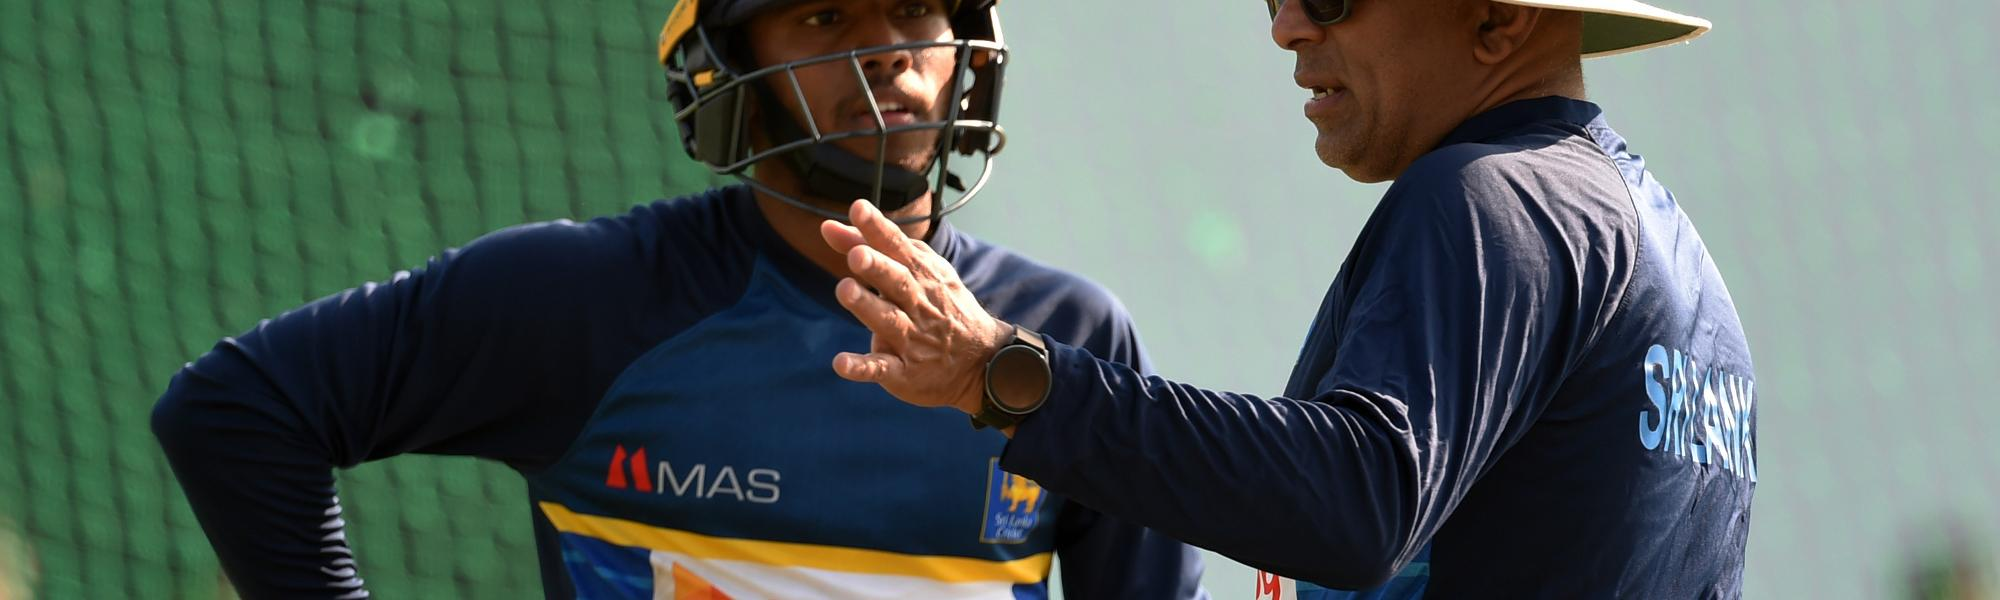 Kusal Mendis has been called up as Kusal Perera's replacement in the T20I side